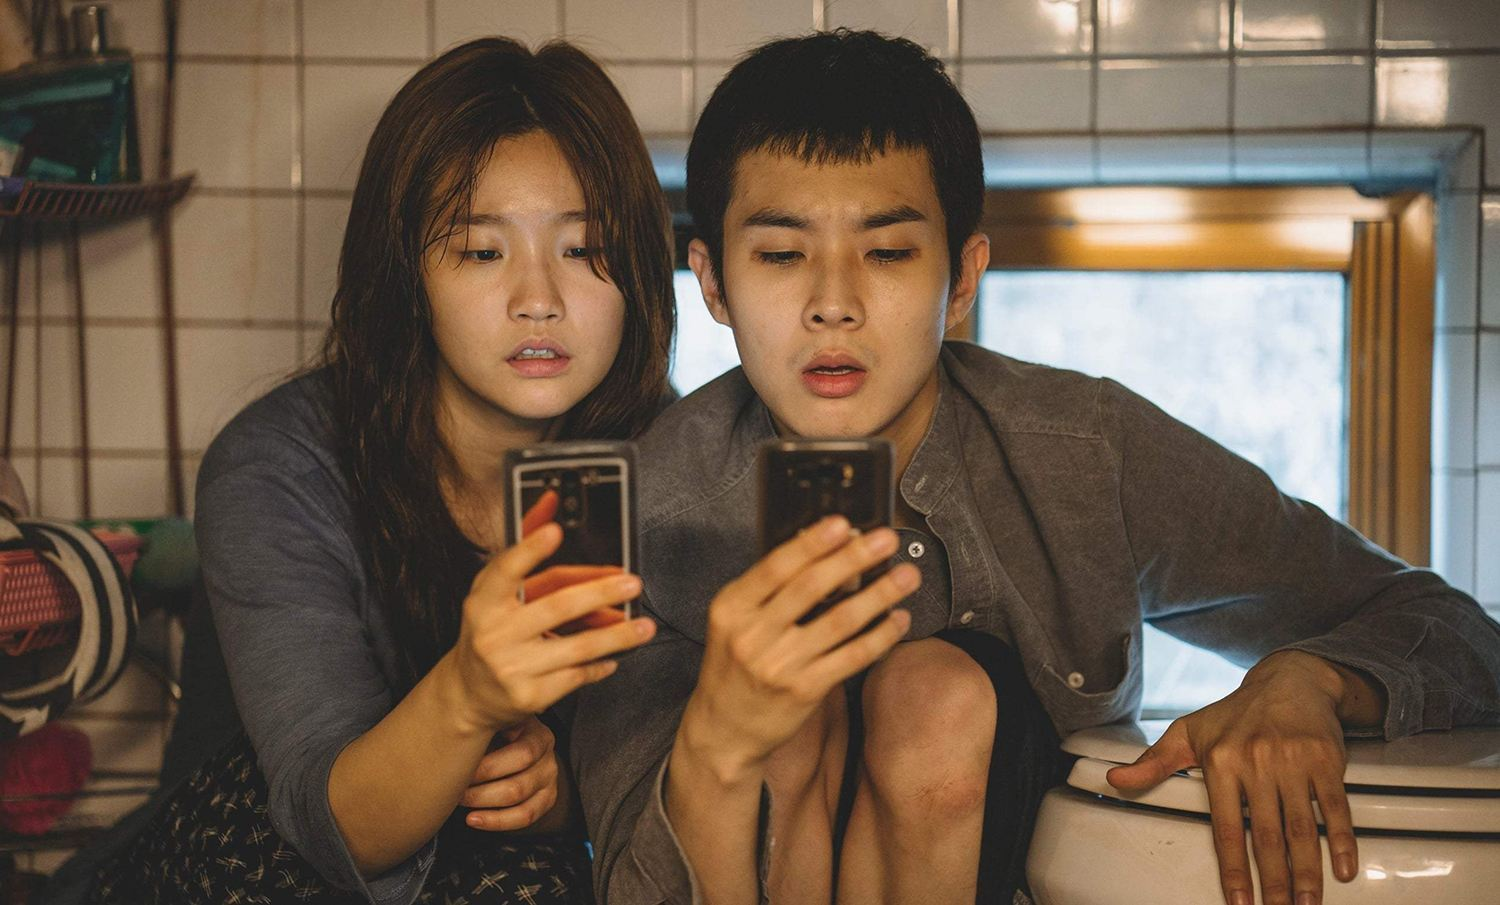 kids on cellphone, movie parasite by Bong Joon-ho